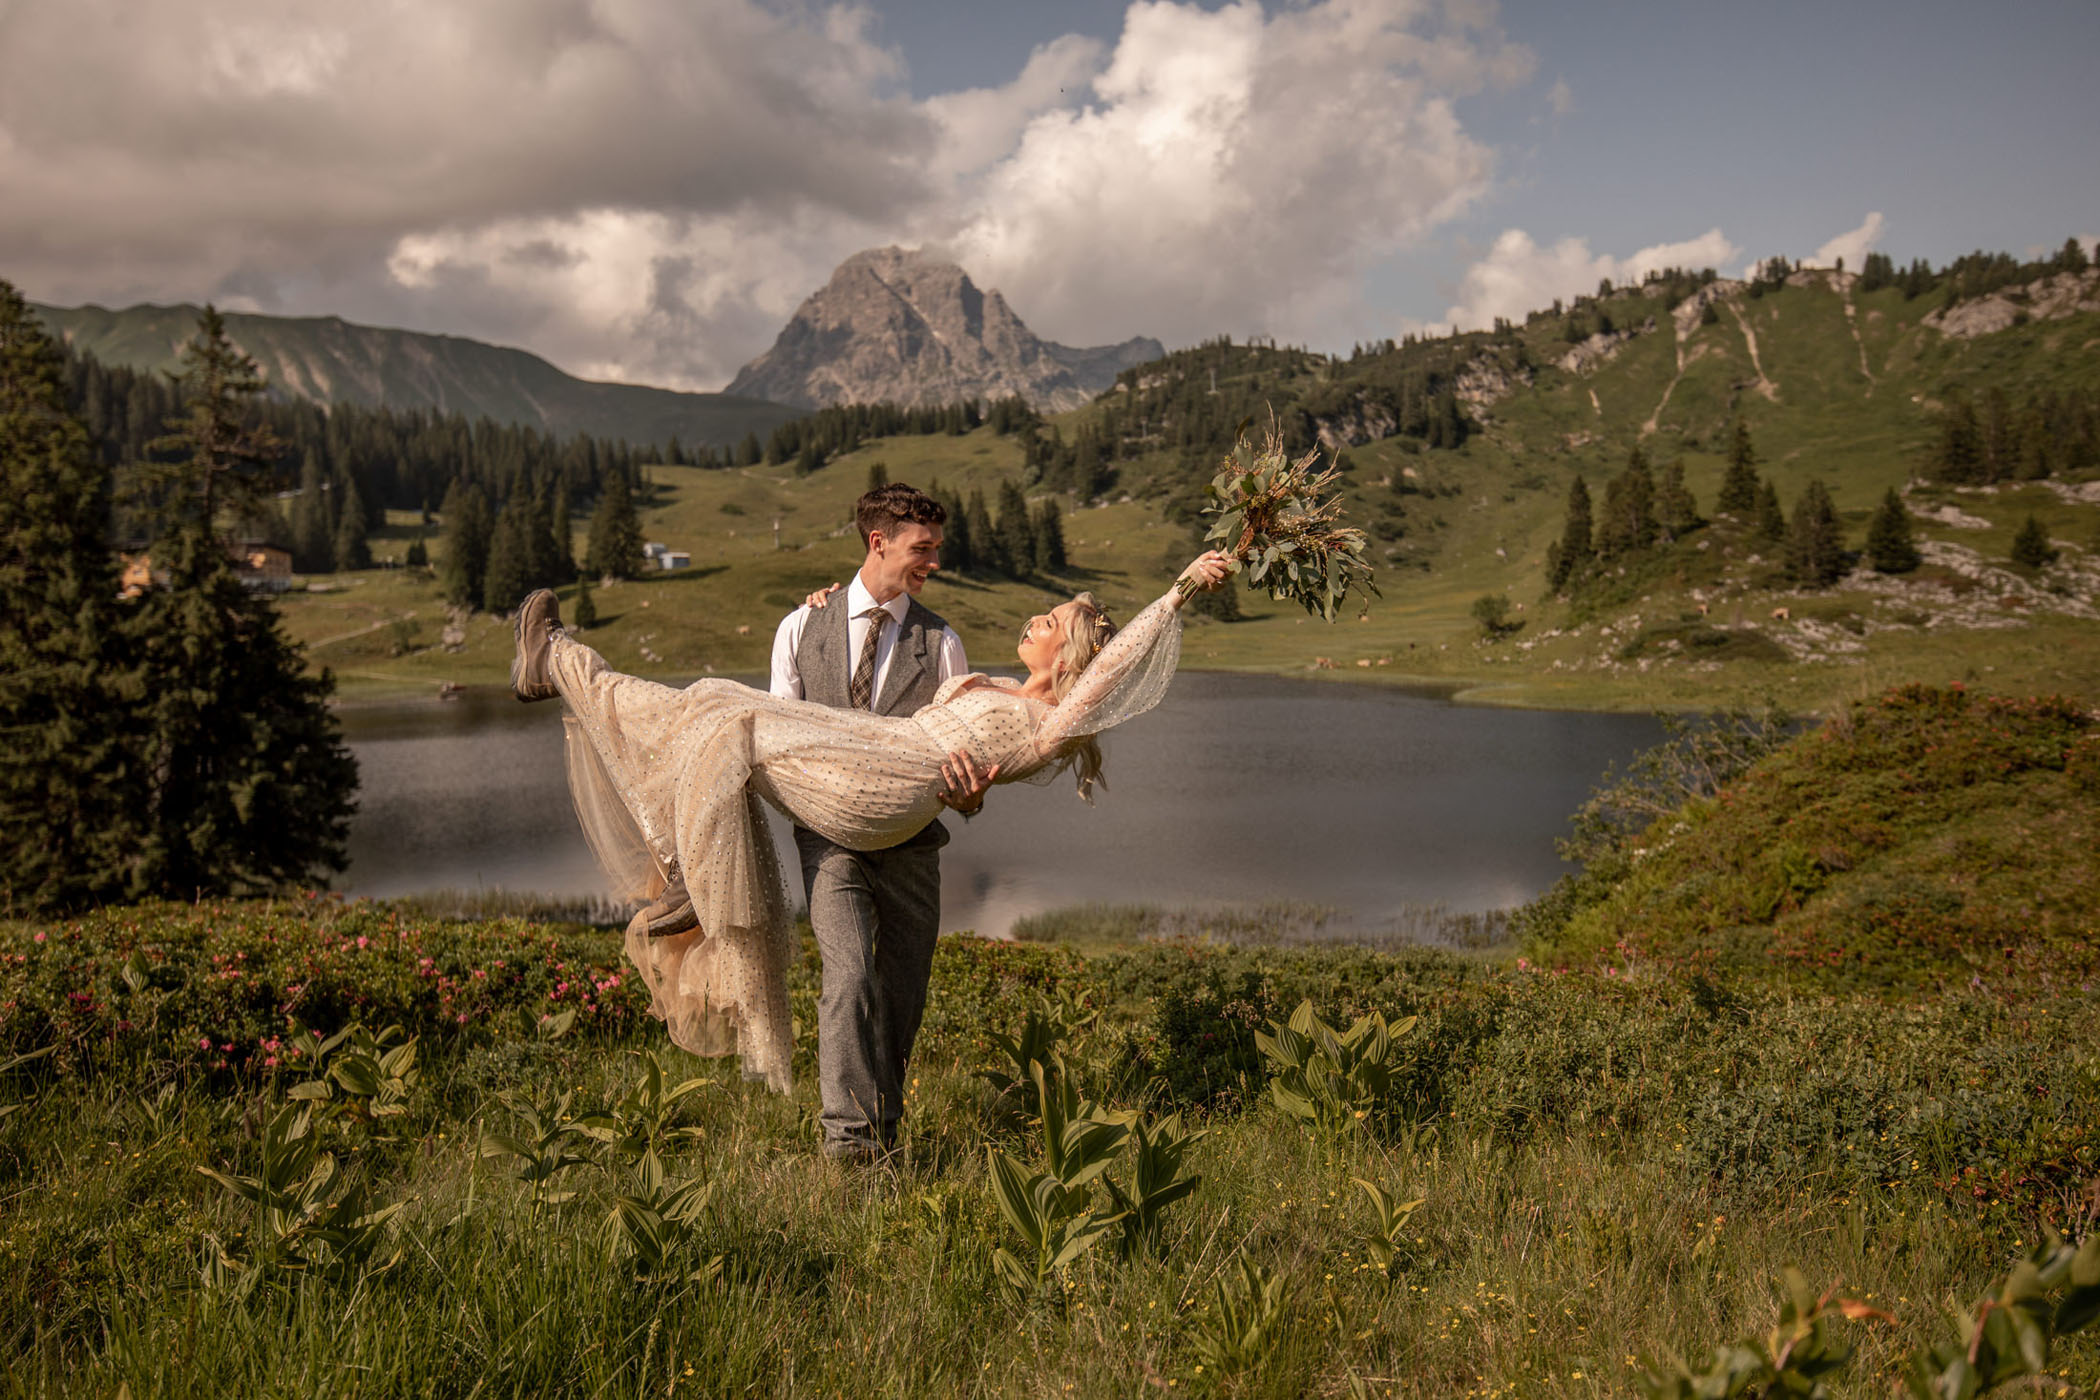 Groom carrying bride lovingly as she holds her bouquet in the air